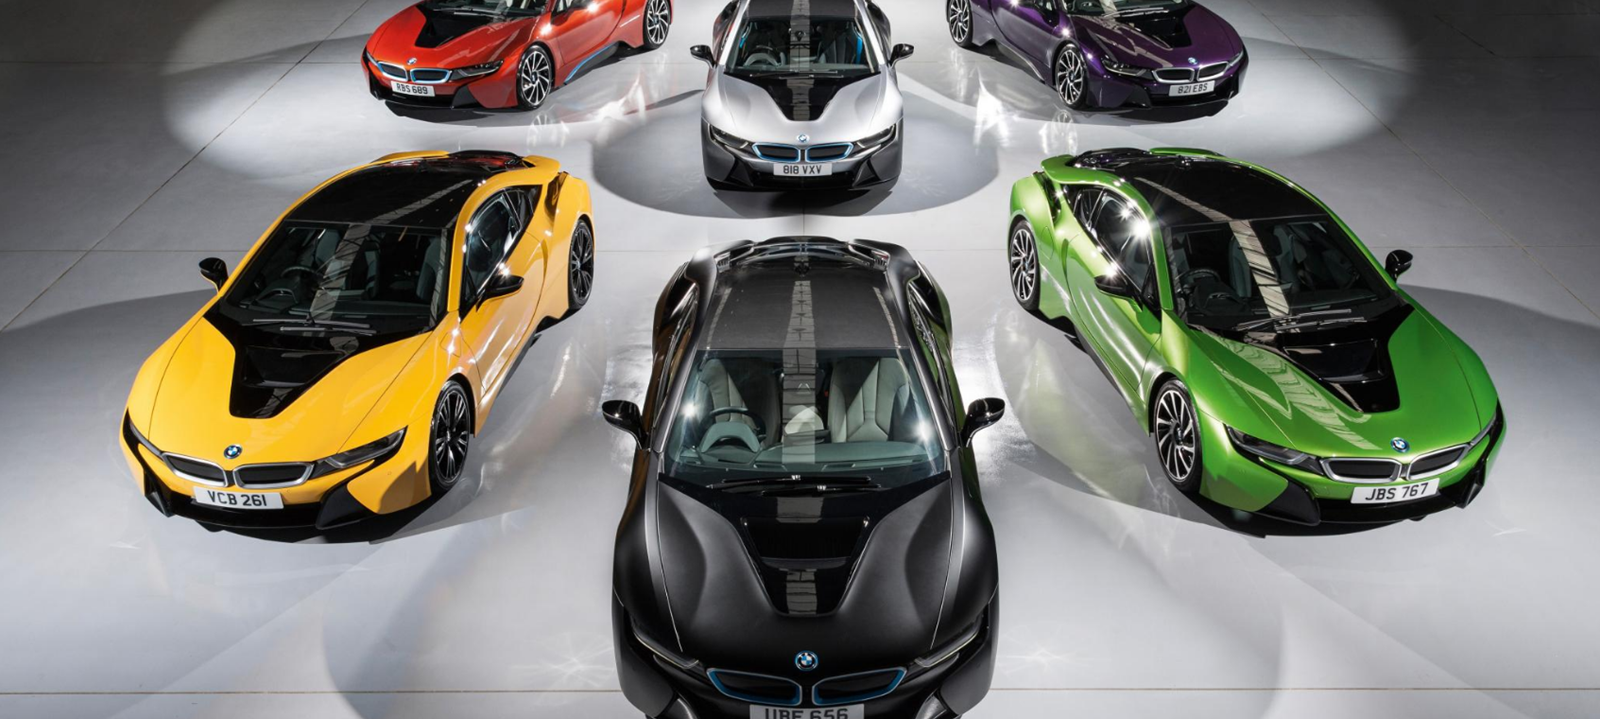 Bmw S New I8 Paint Job Range By Top Gear